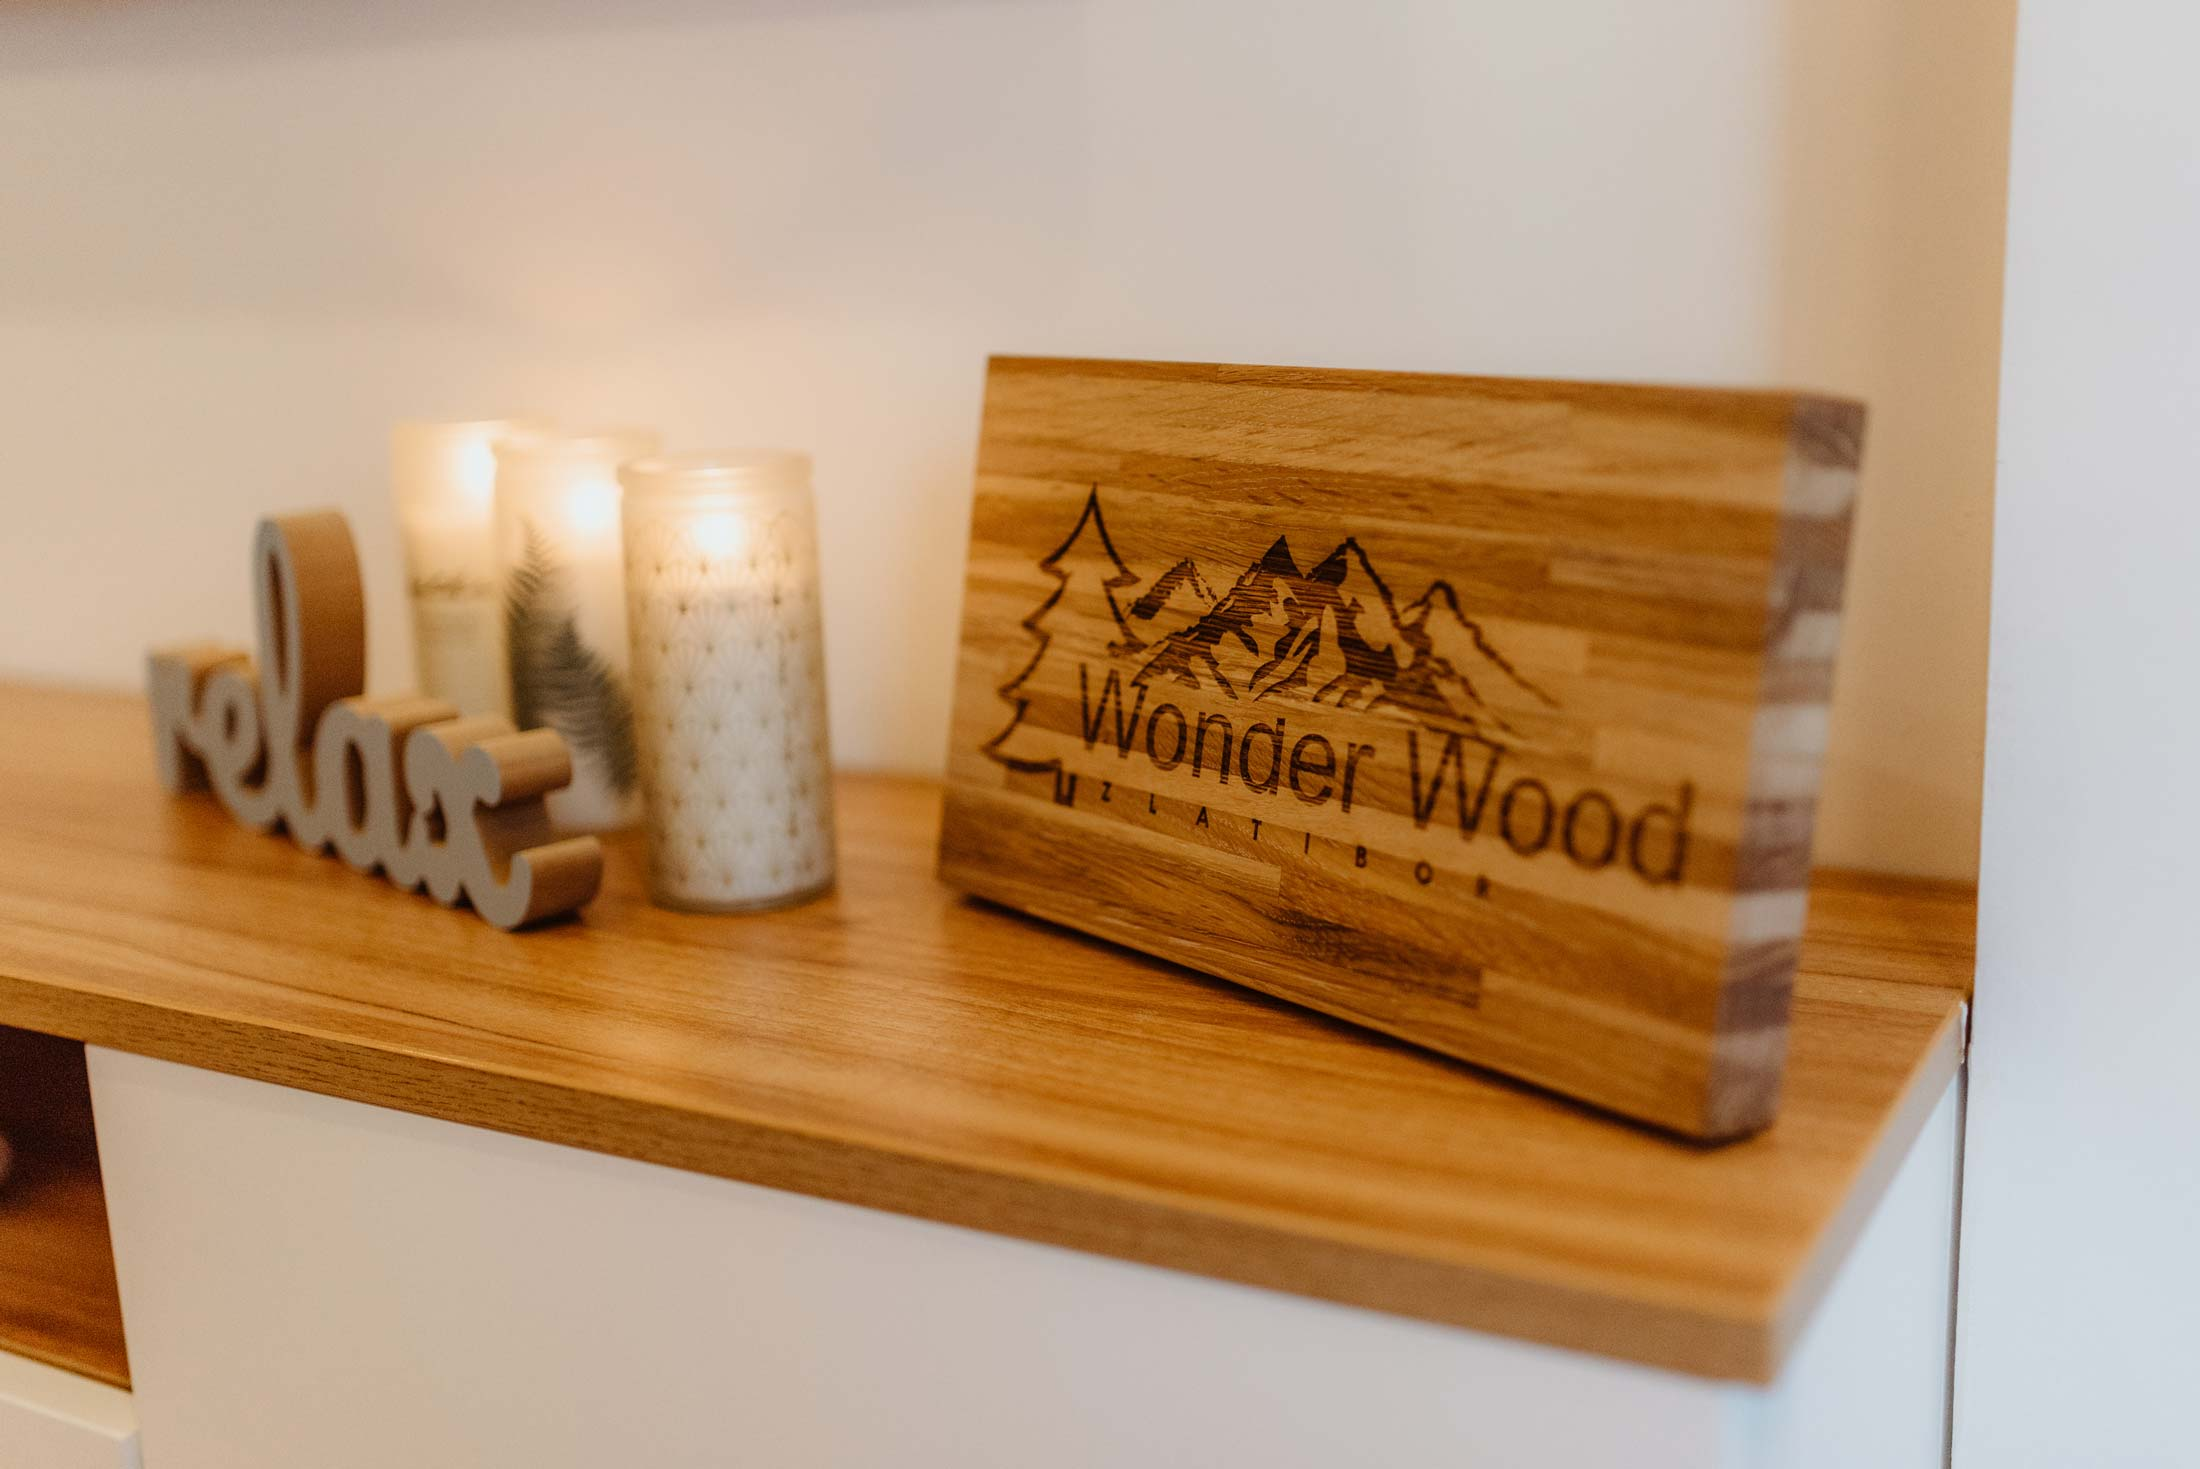 Apartman Wonder Wood